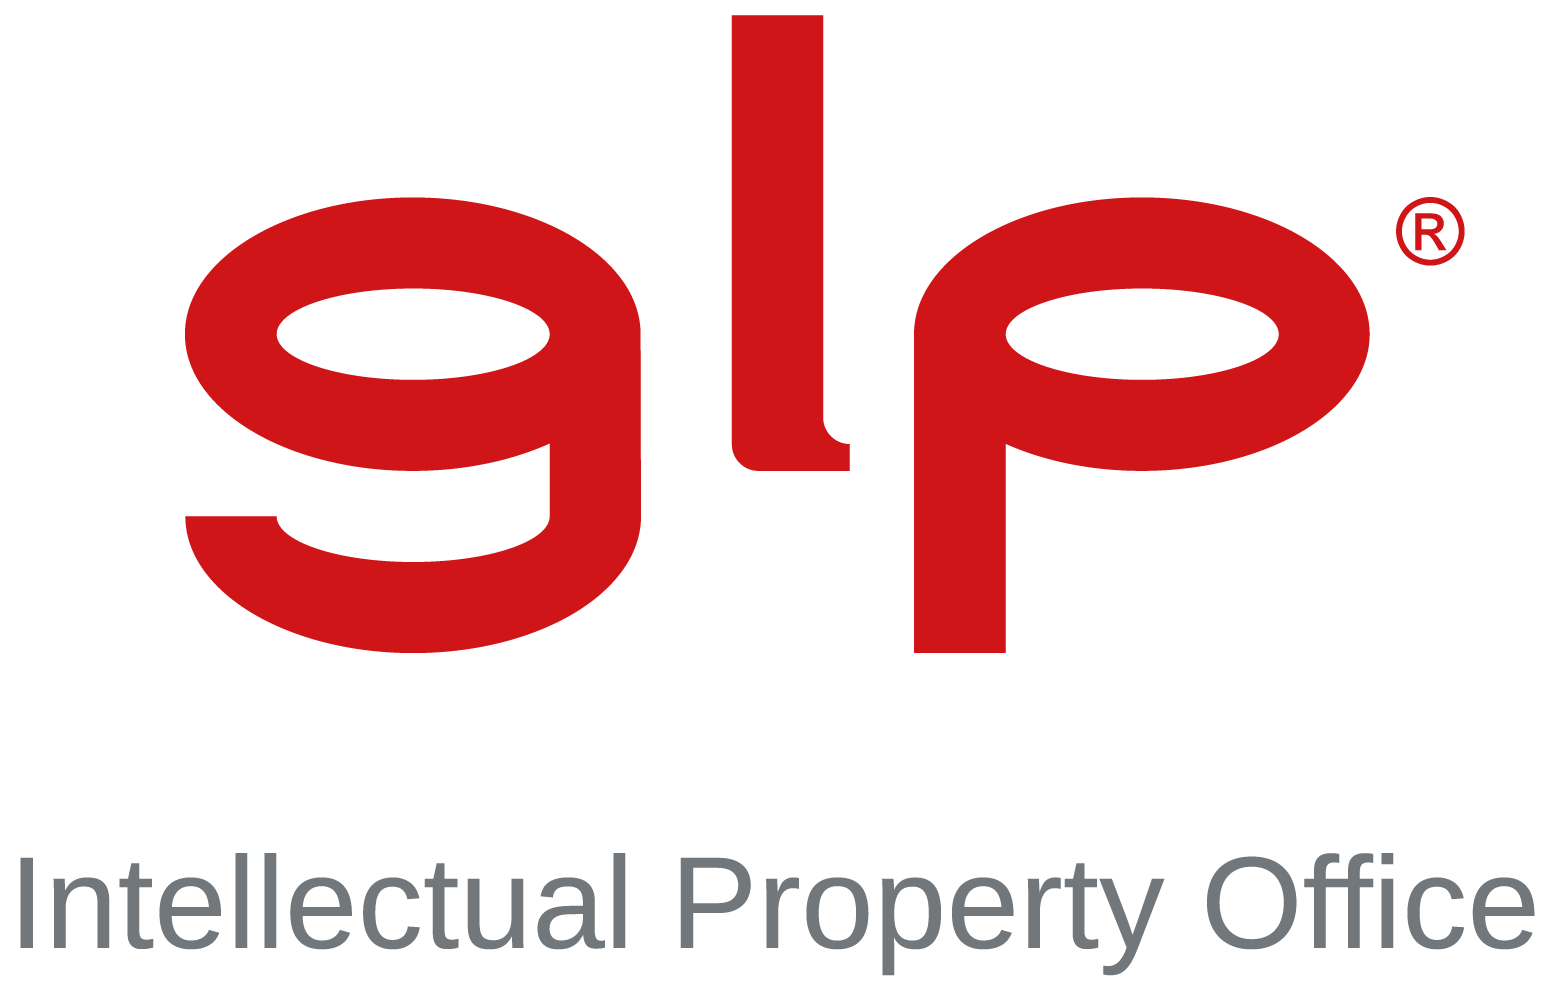 GLP Intellectual Property Office